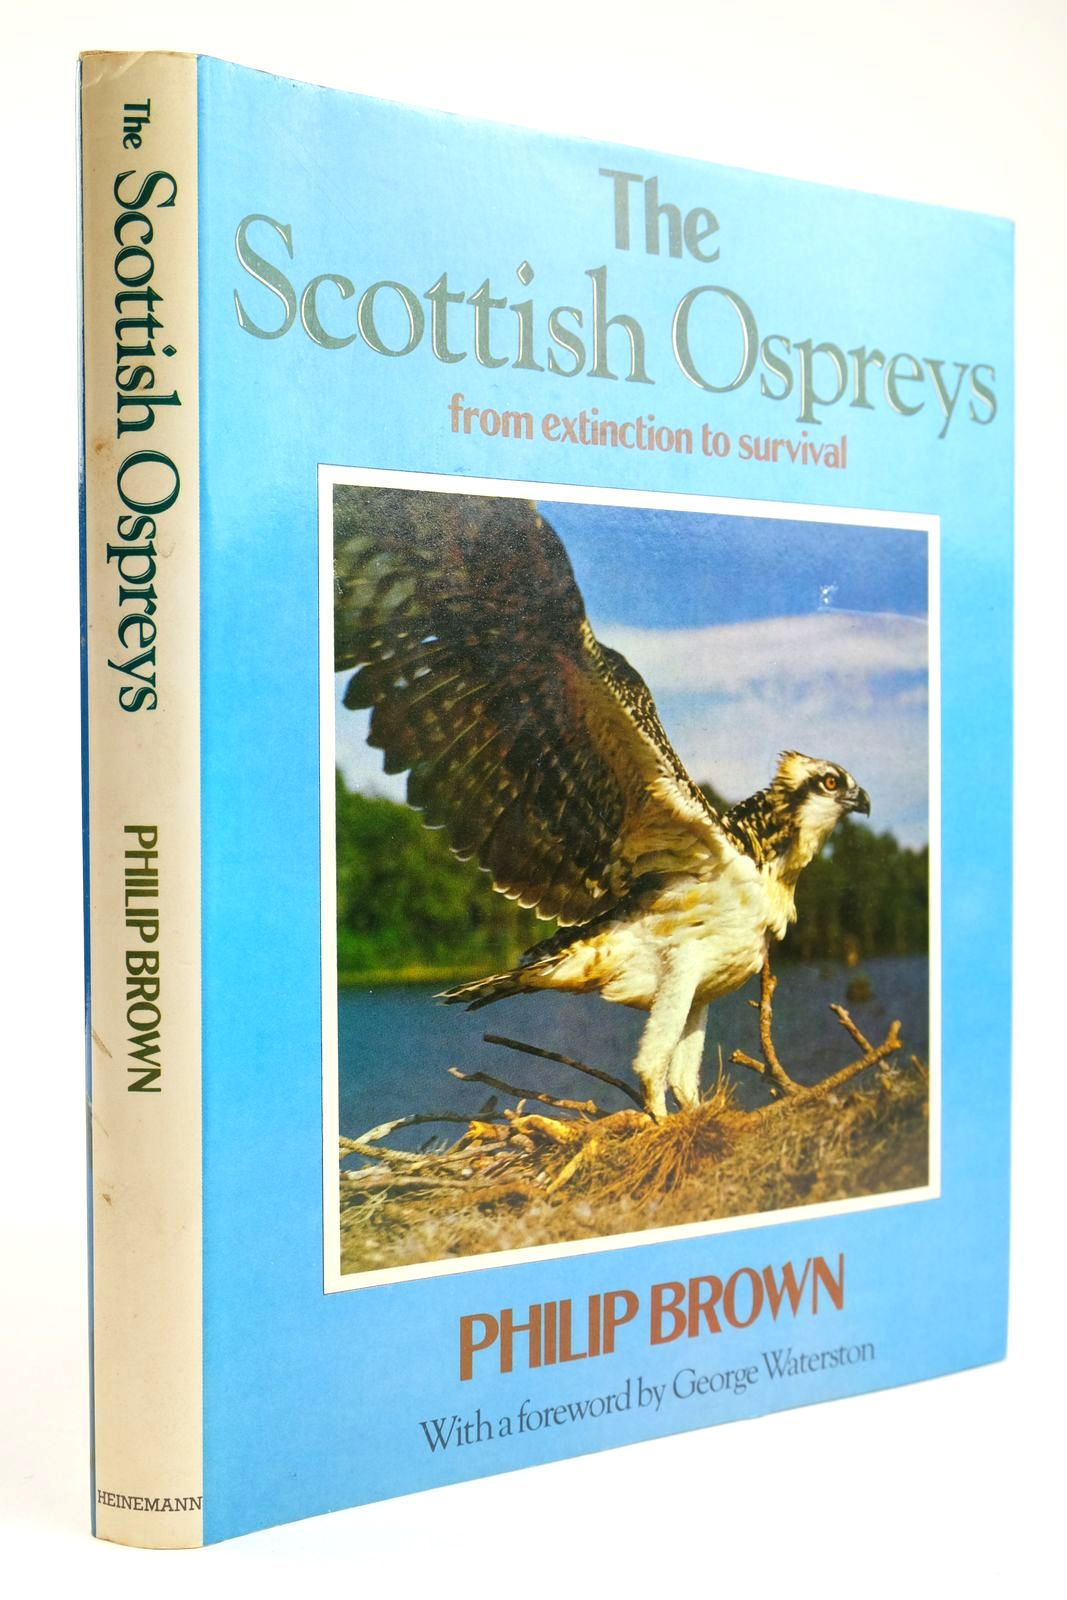 Photo of THE SCOTTISH OSPREYS FROM EXTINCTION TO SURVIVAL